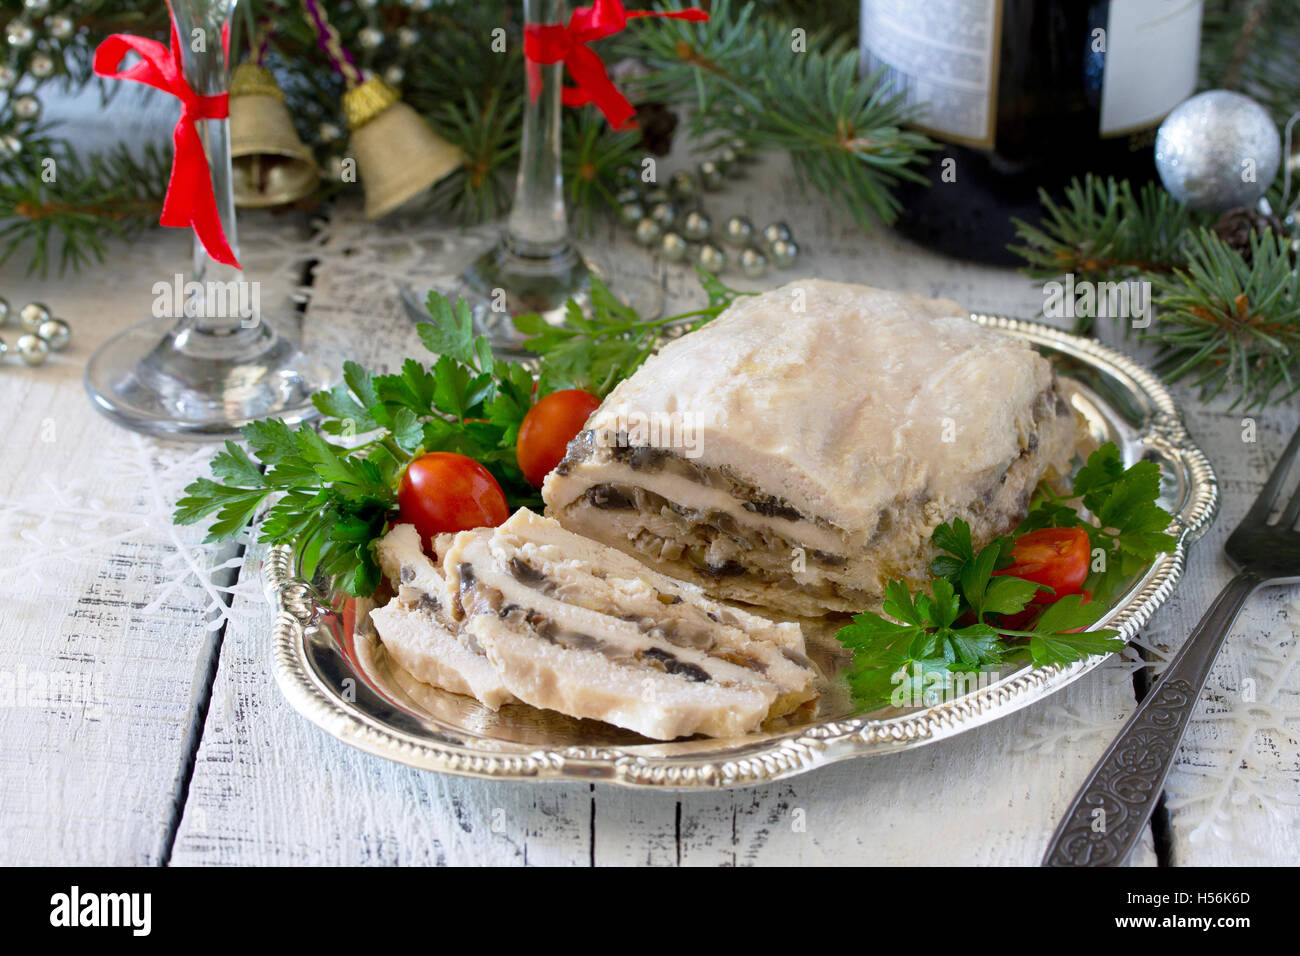 Homemade meat chicken roll with mushrooms, onions and gelatin on the Christmas table. - Stock Image